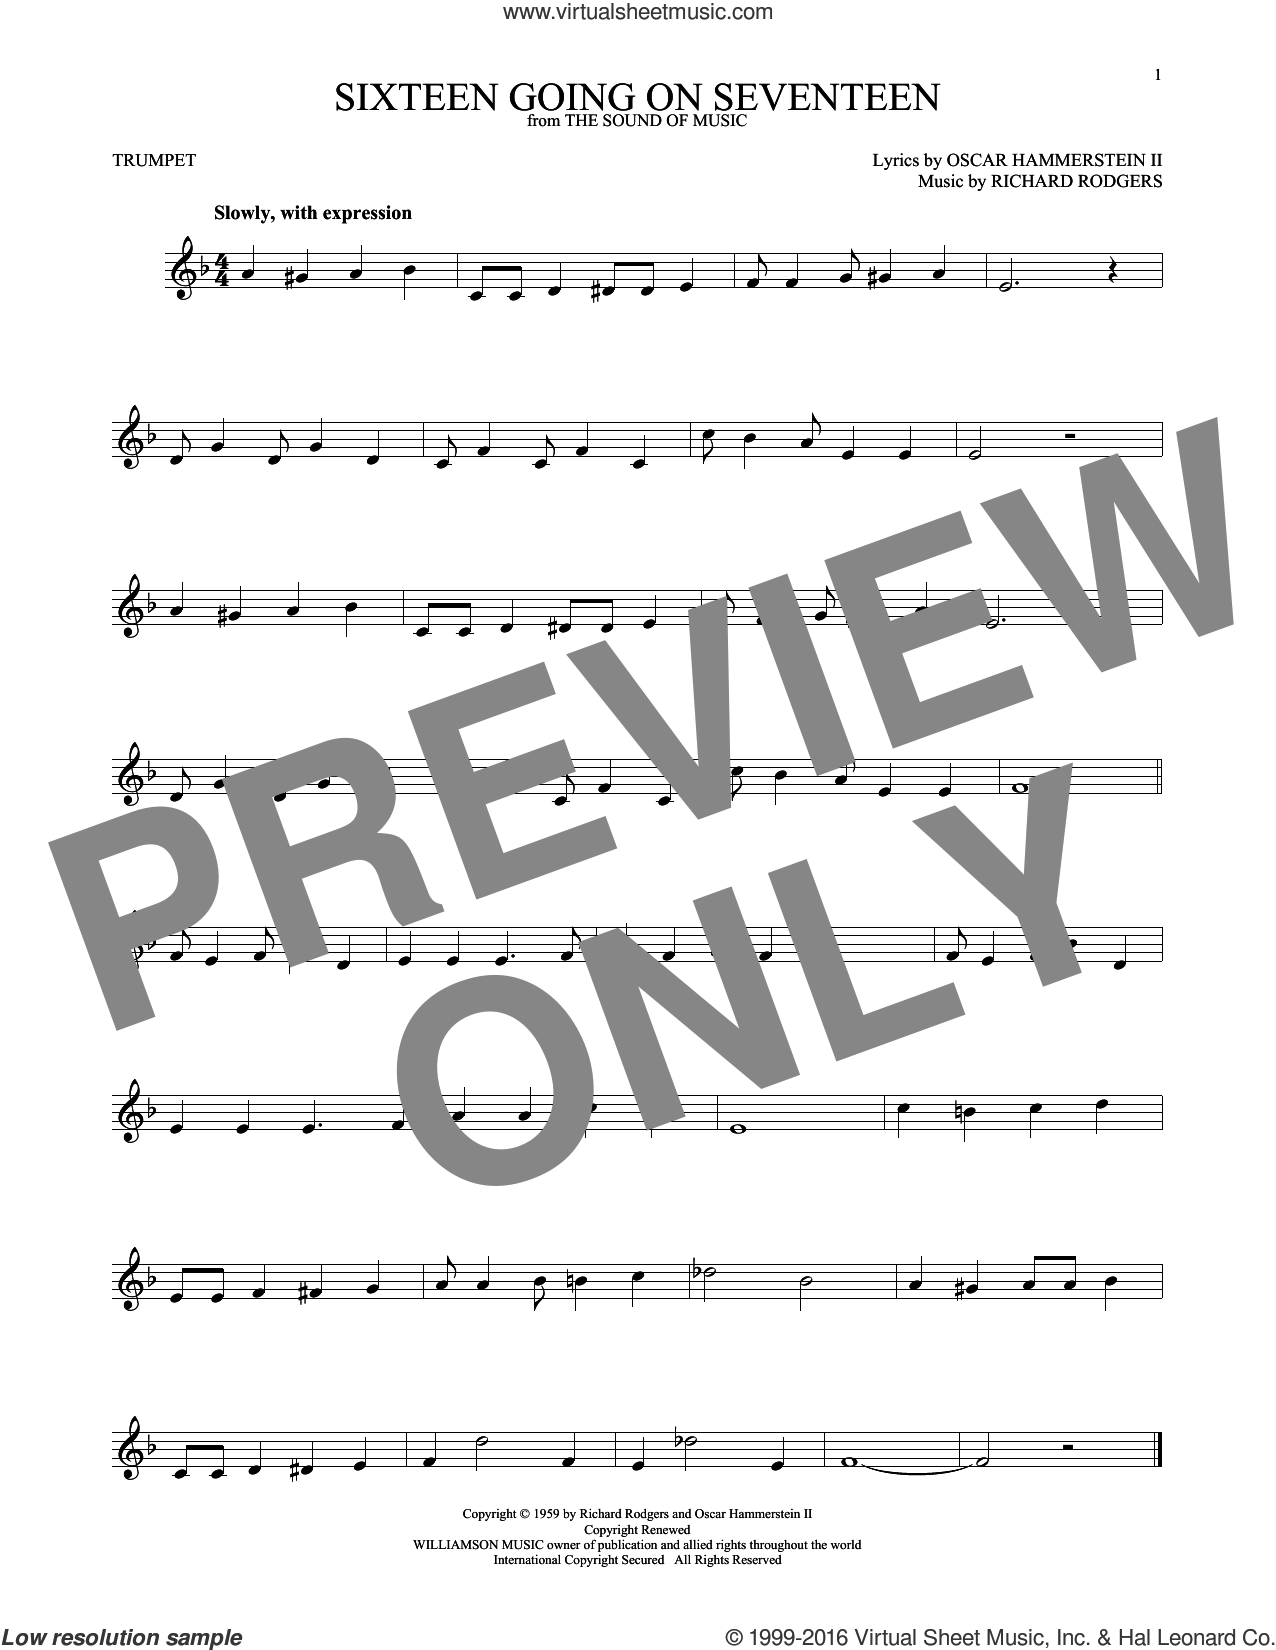 Sixteen Going On Seventeen sheet music for trumpet solo by Richard Rodgers, Rodgers & Hammerstein and Oscar II Hammerstein. Score Image Preview.